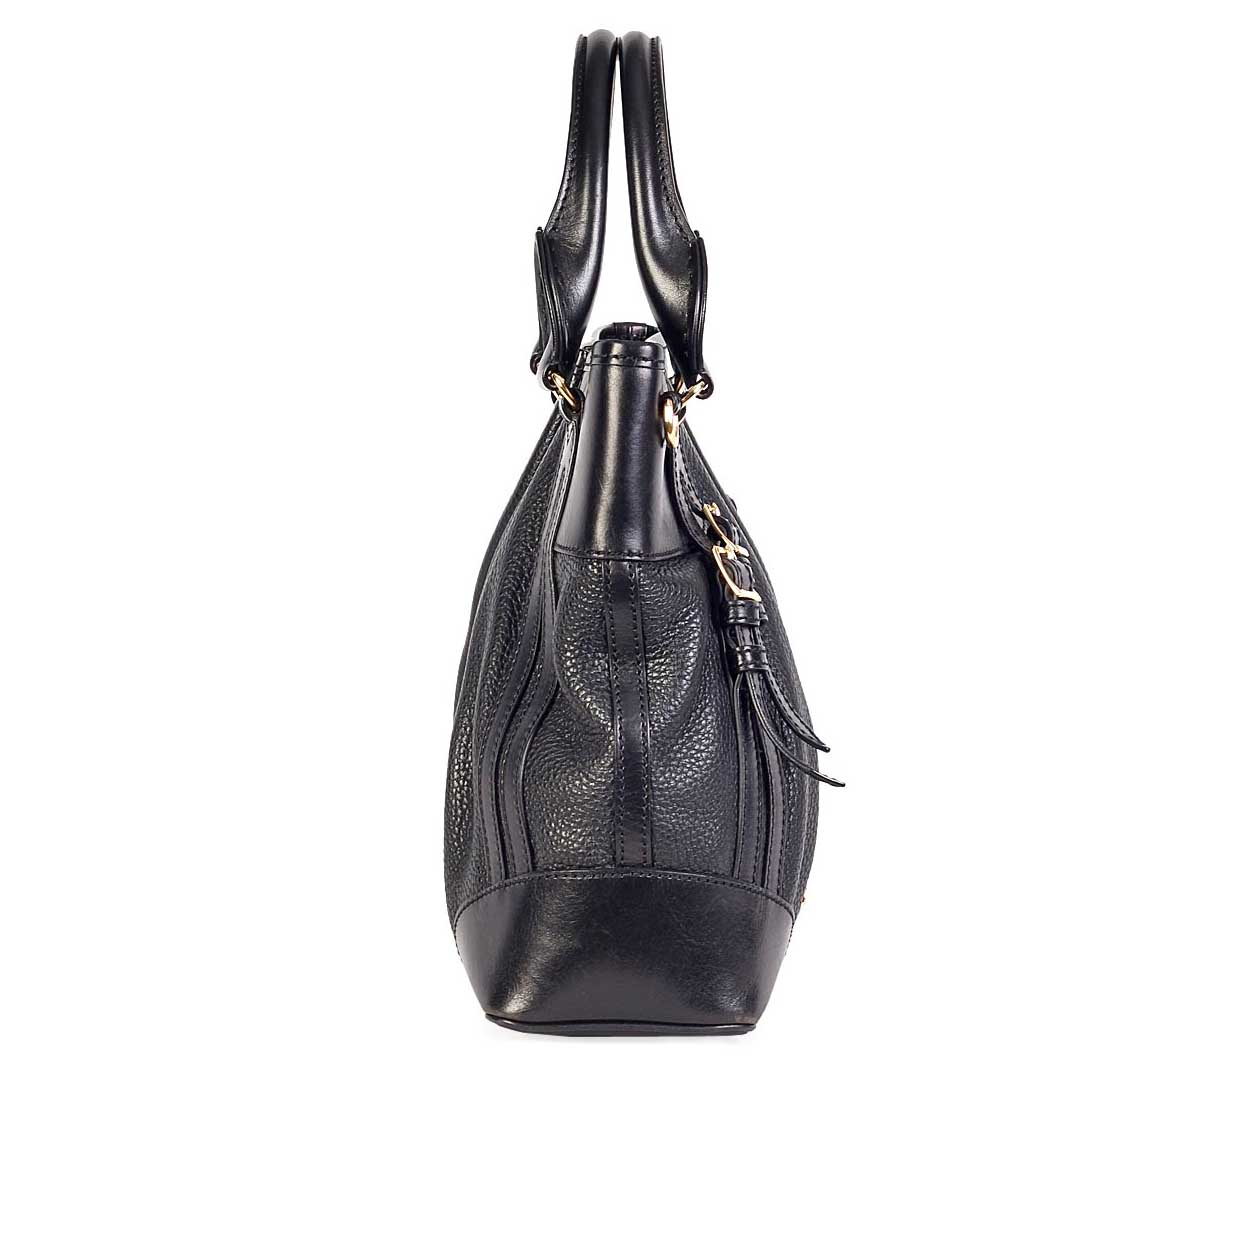 burberry gray bag zjld  BURBERRY Graned Leather Bucket Bag- Side 1